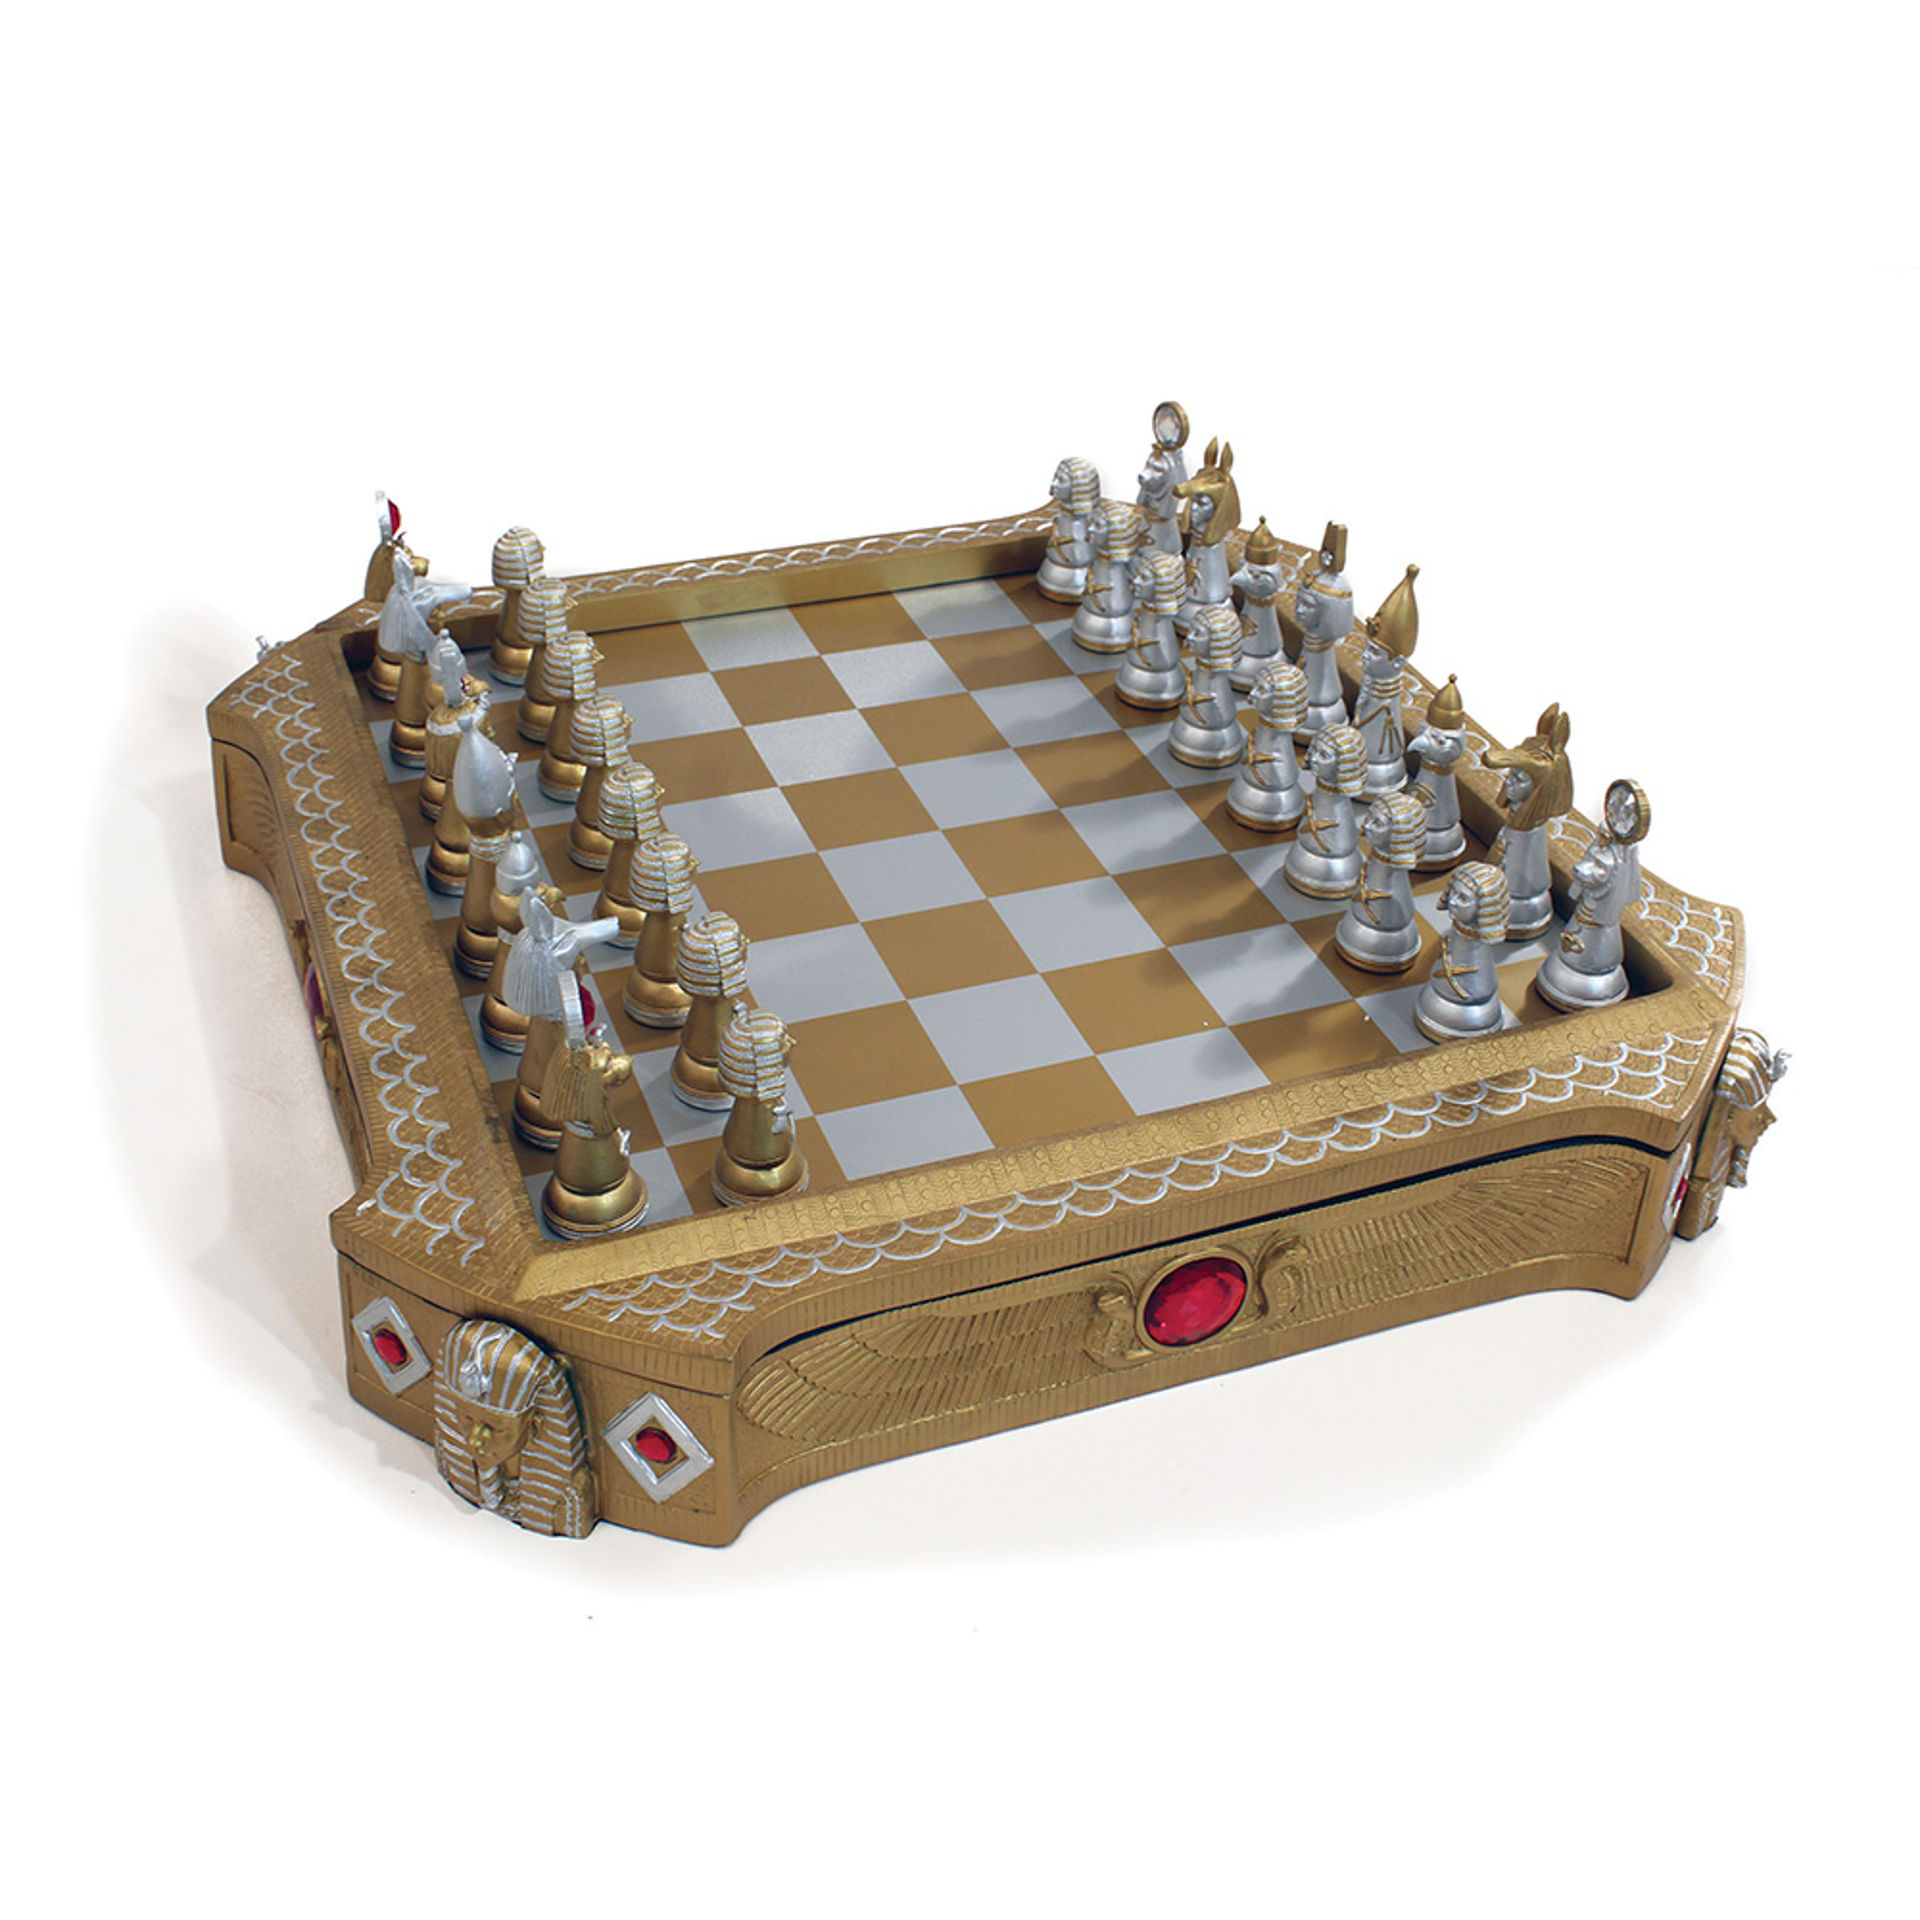 Picture of Deluxe King Tut Chess Set